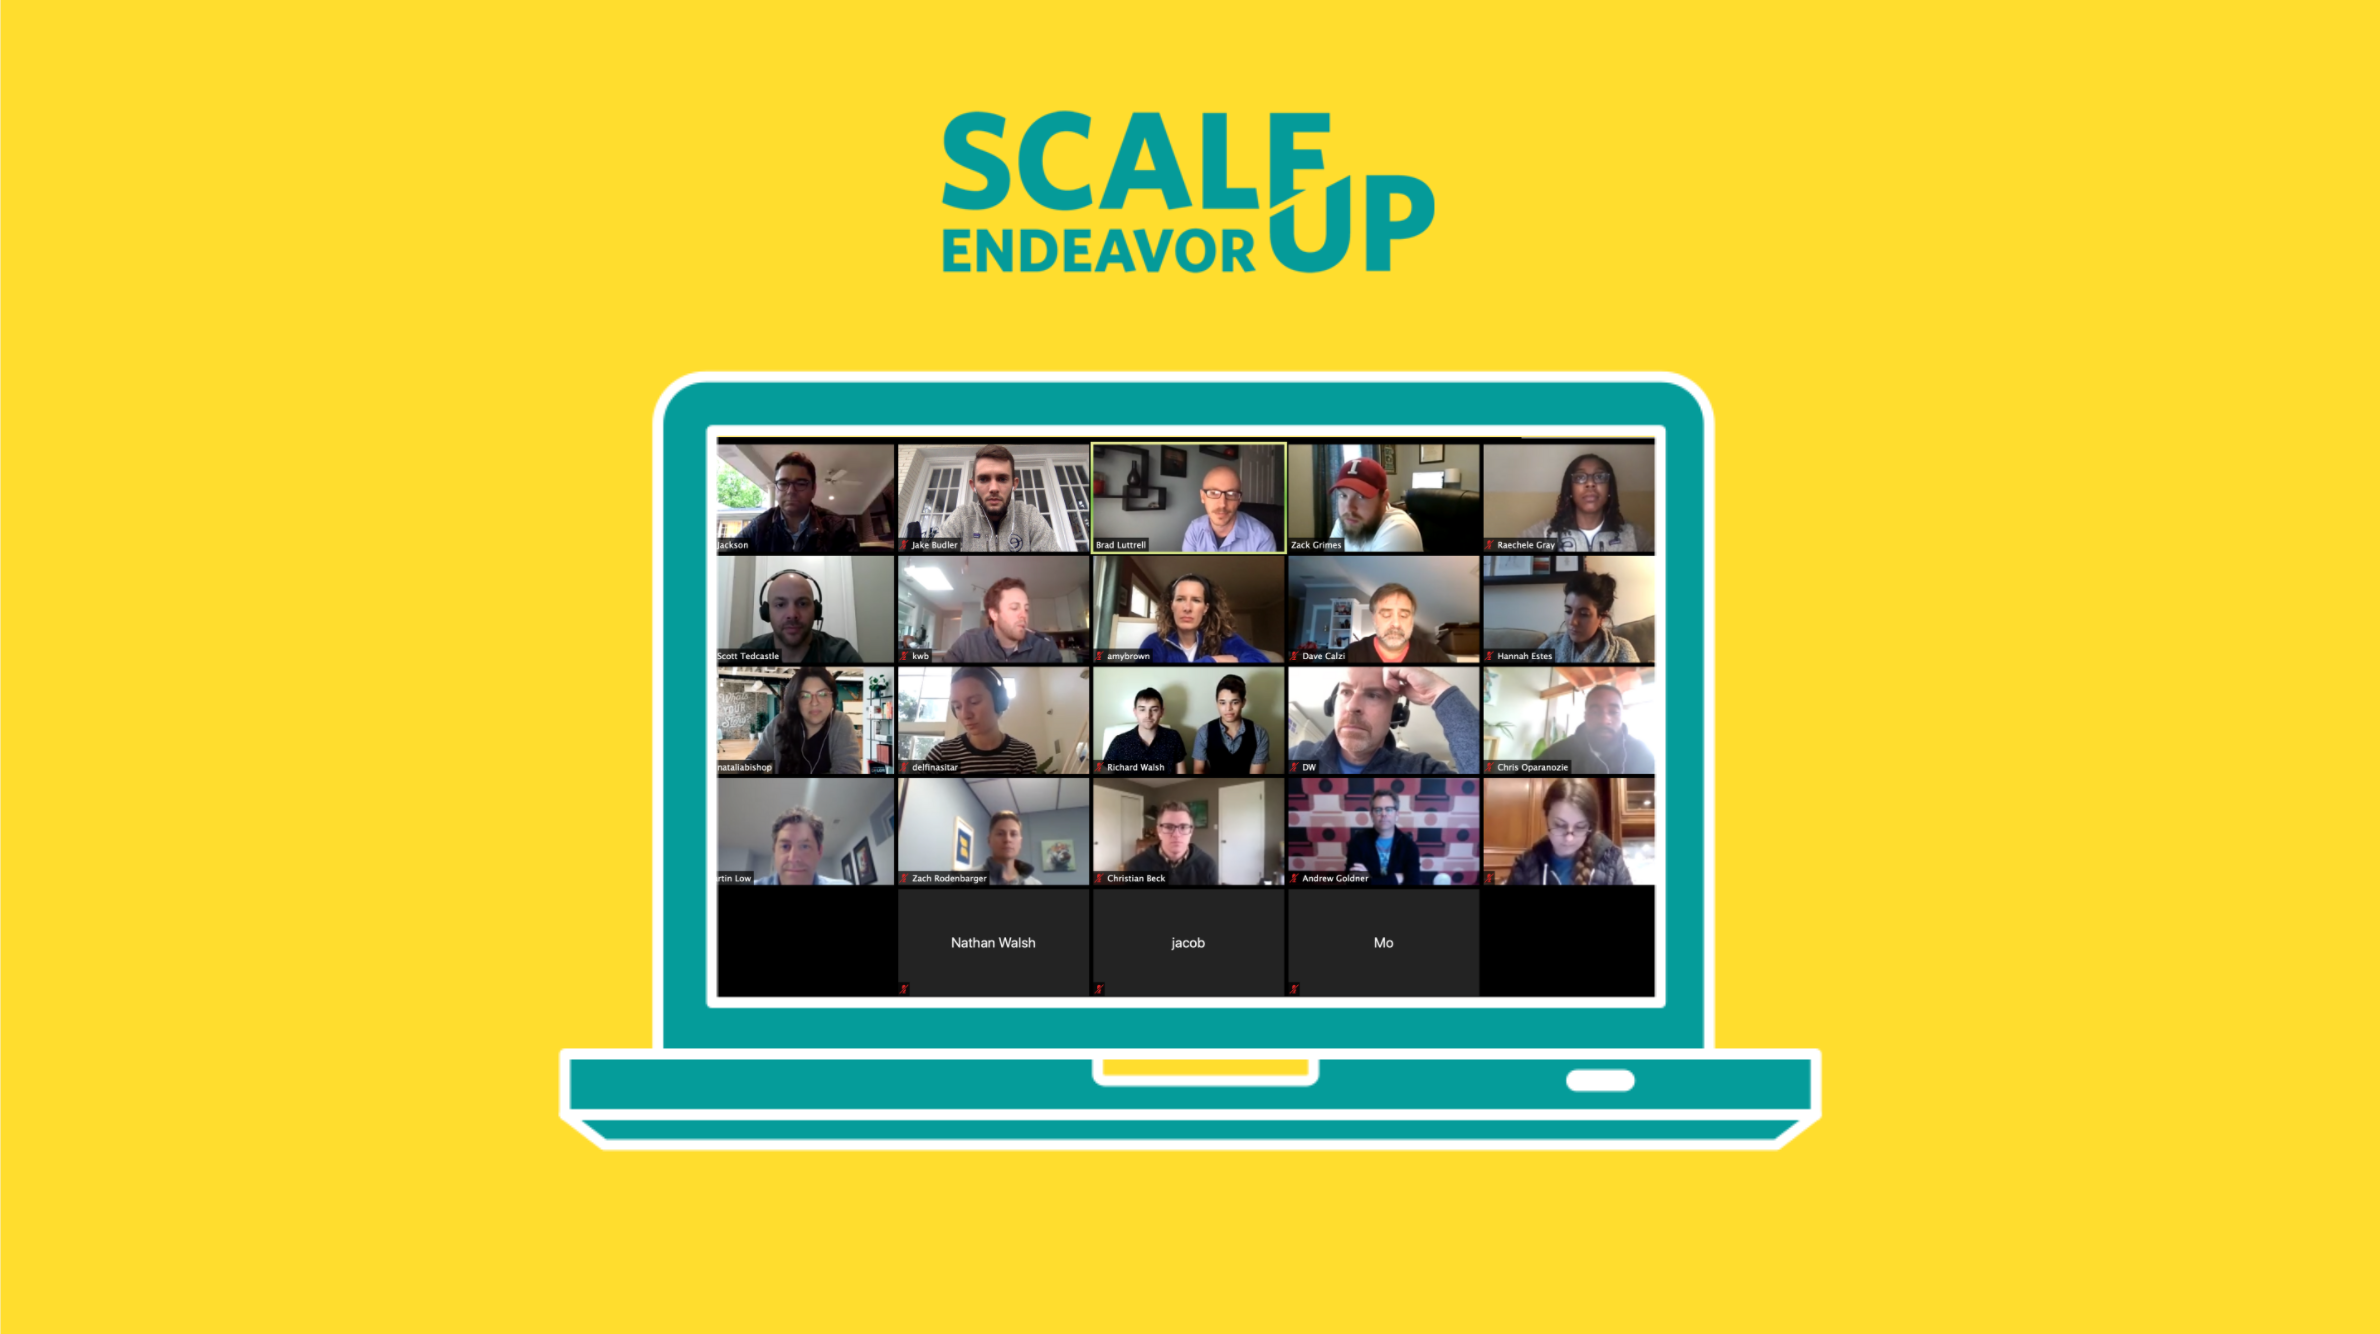 Endeavor Launches Second Annual Scale Up Program Using Zoom